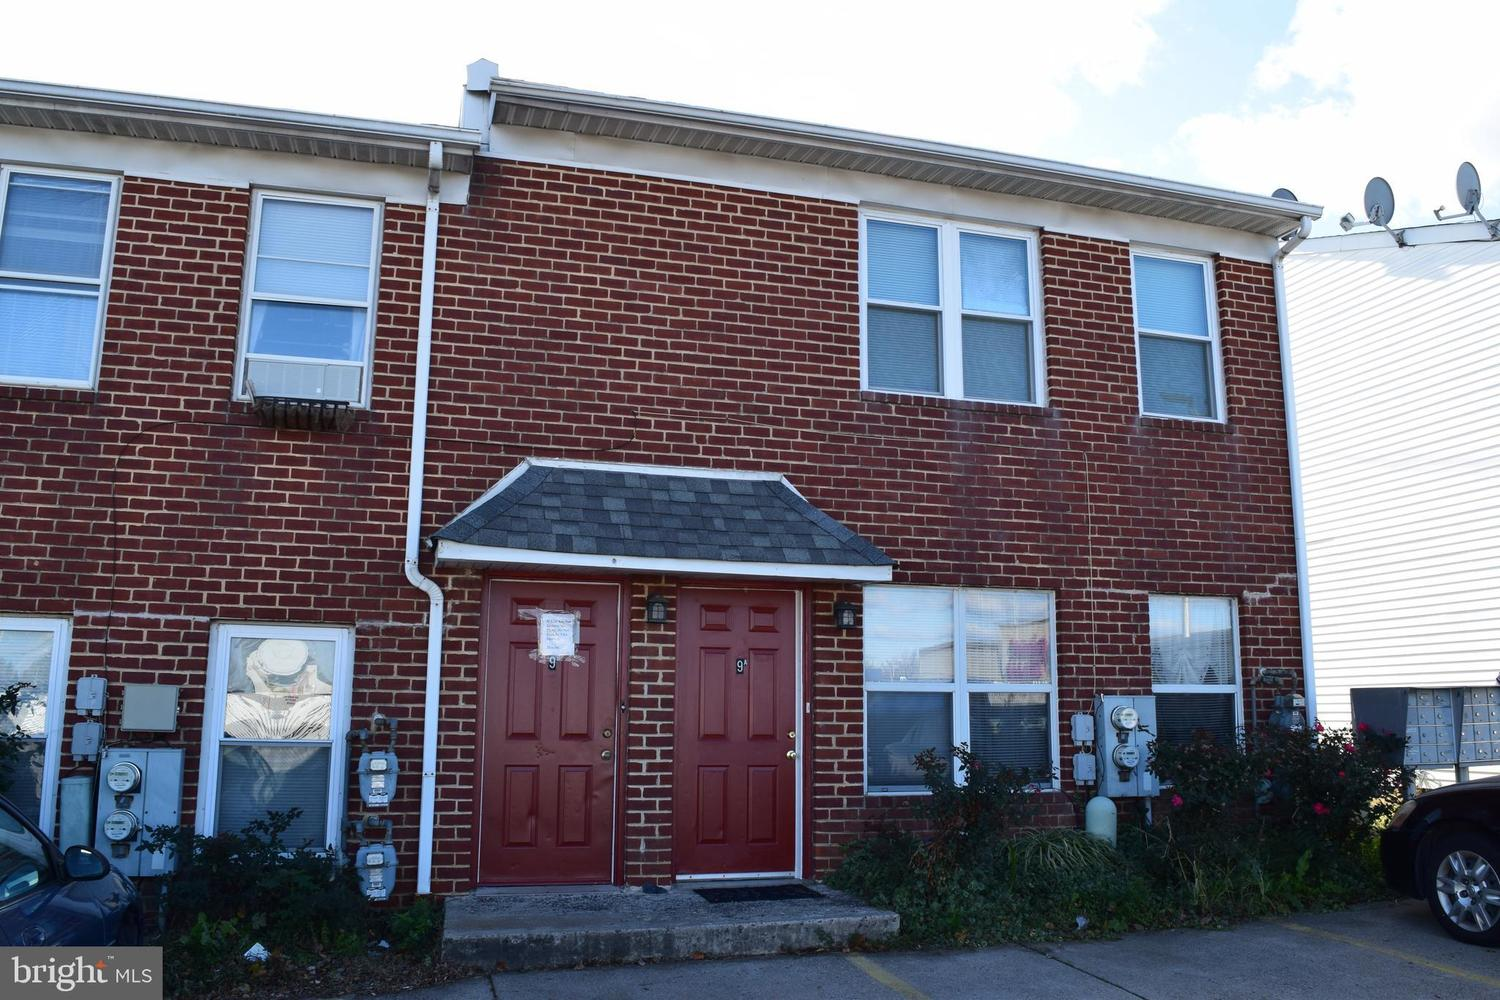 8712 Frankford Avenue, Unit 9 Philadelphia, PA 19136